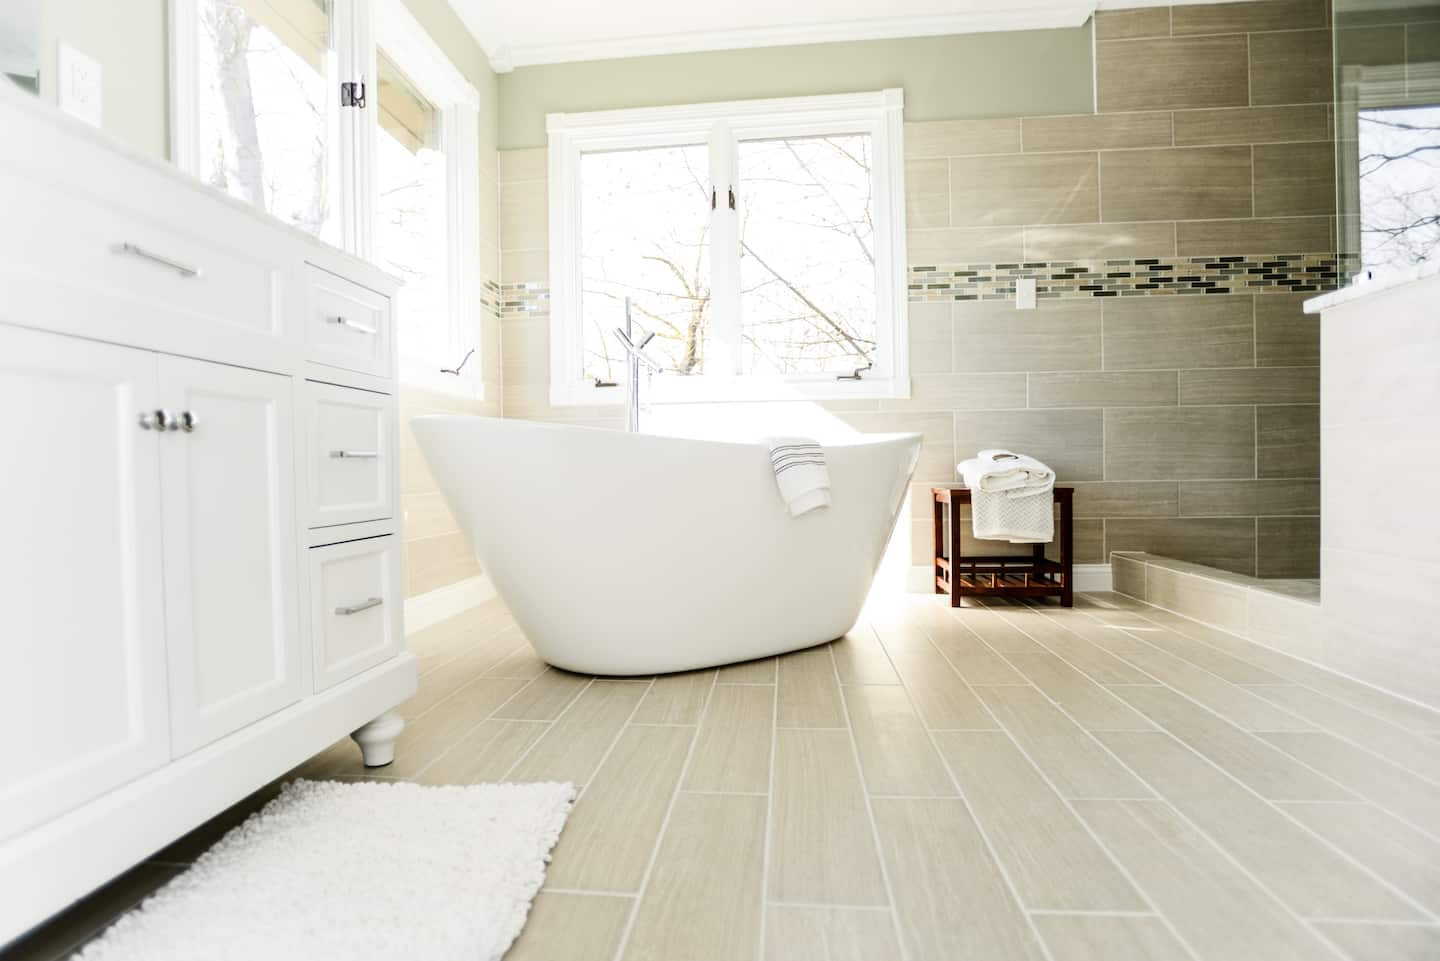 Bathroom Remodel Cost Ct how much does a bathroom remodel cost? | angie's list